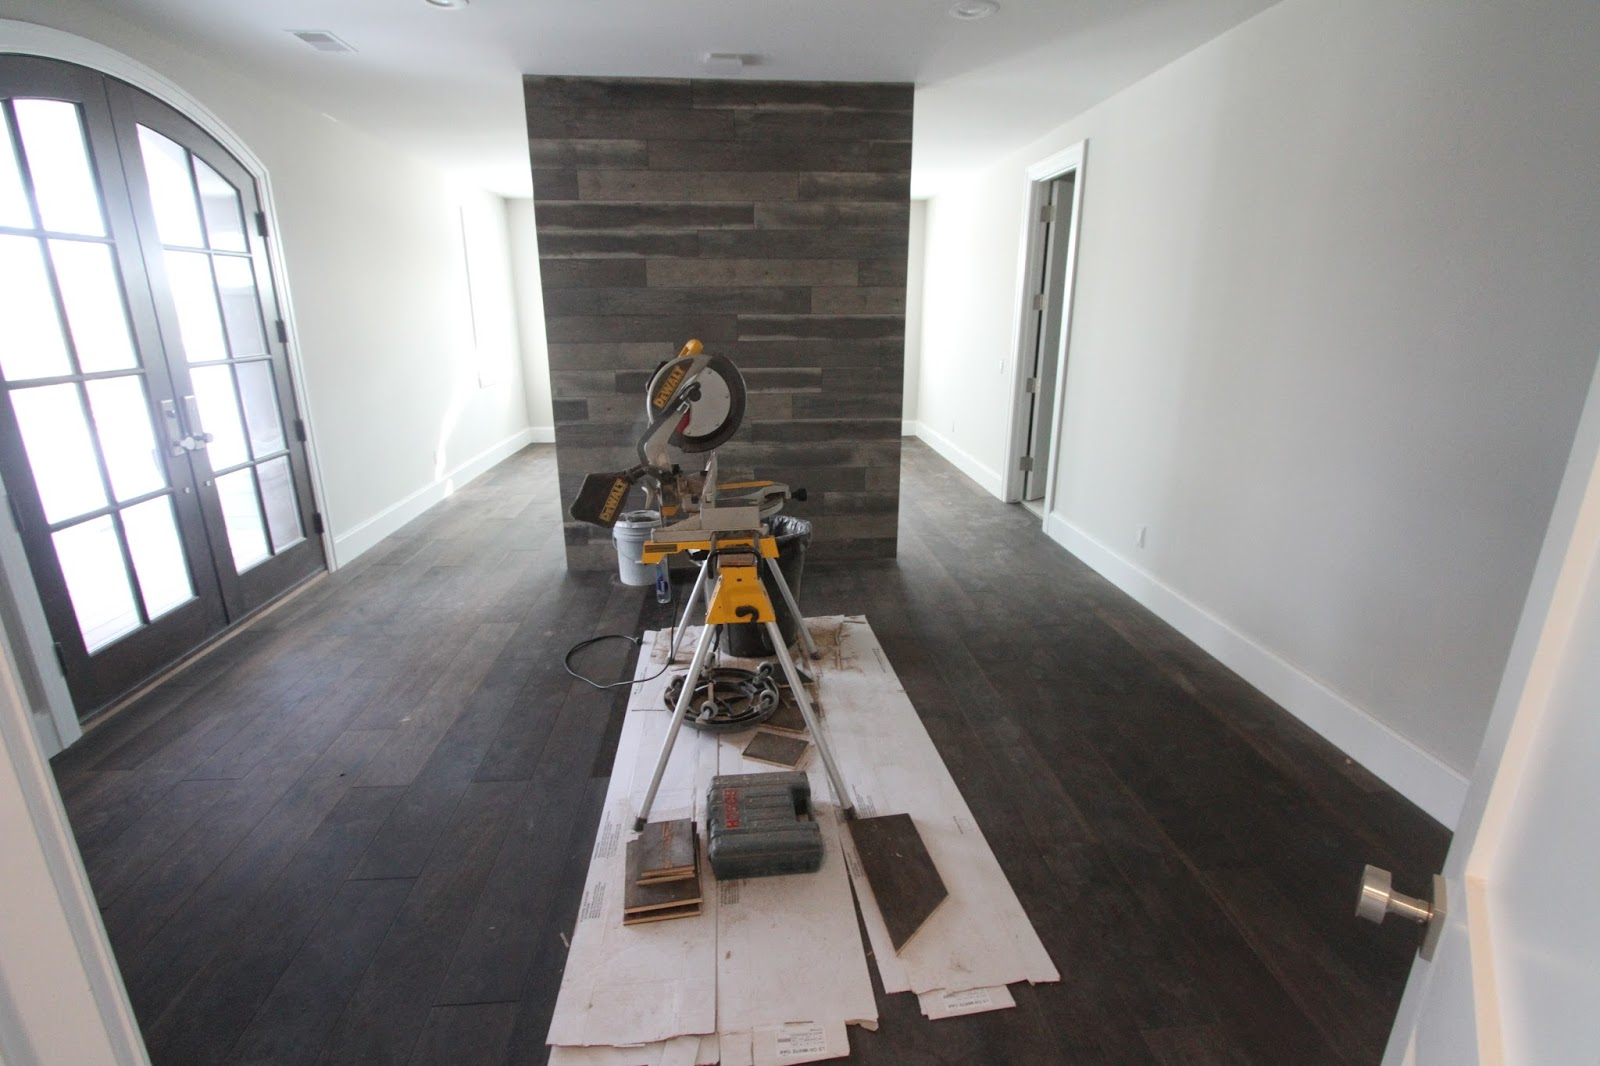 Our lake fortress wood floor progress the flooring installers have completed the wood floor in the master bedroom theres still a transition piece that will need to be installed and stained solutioingenieria Images